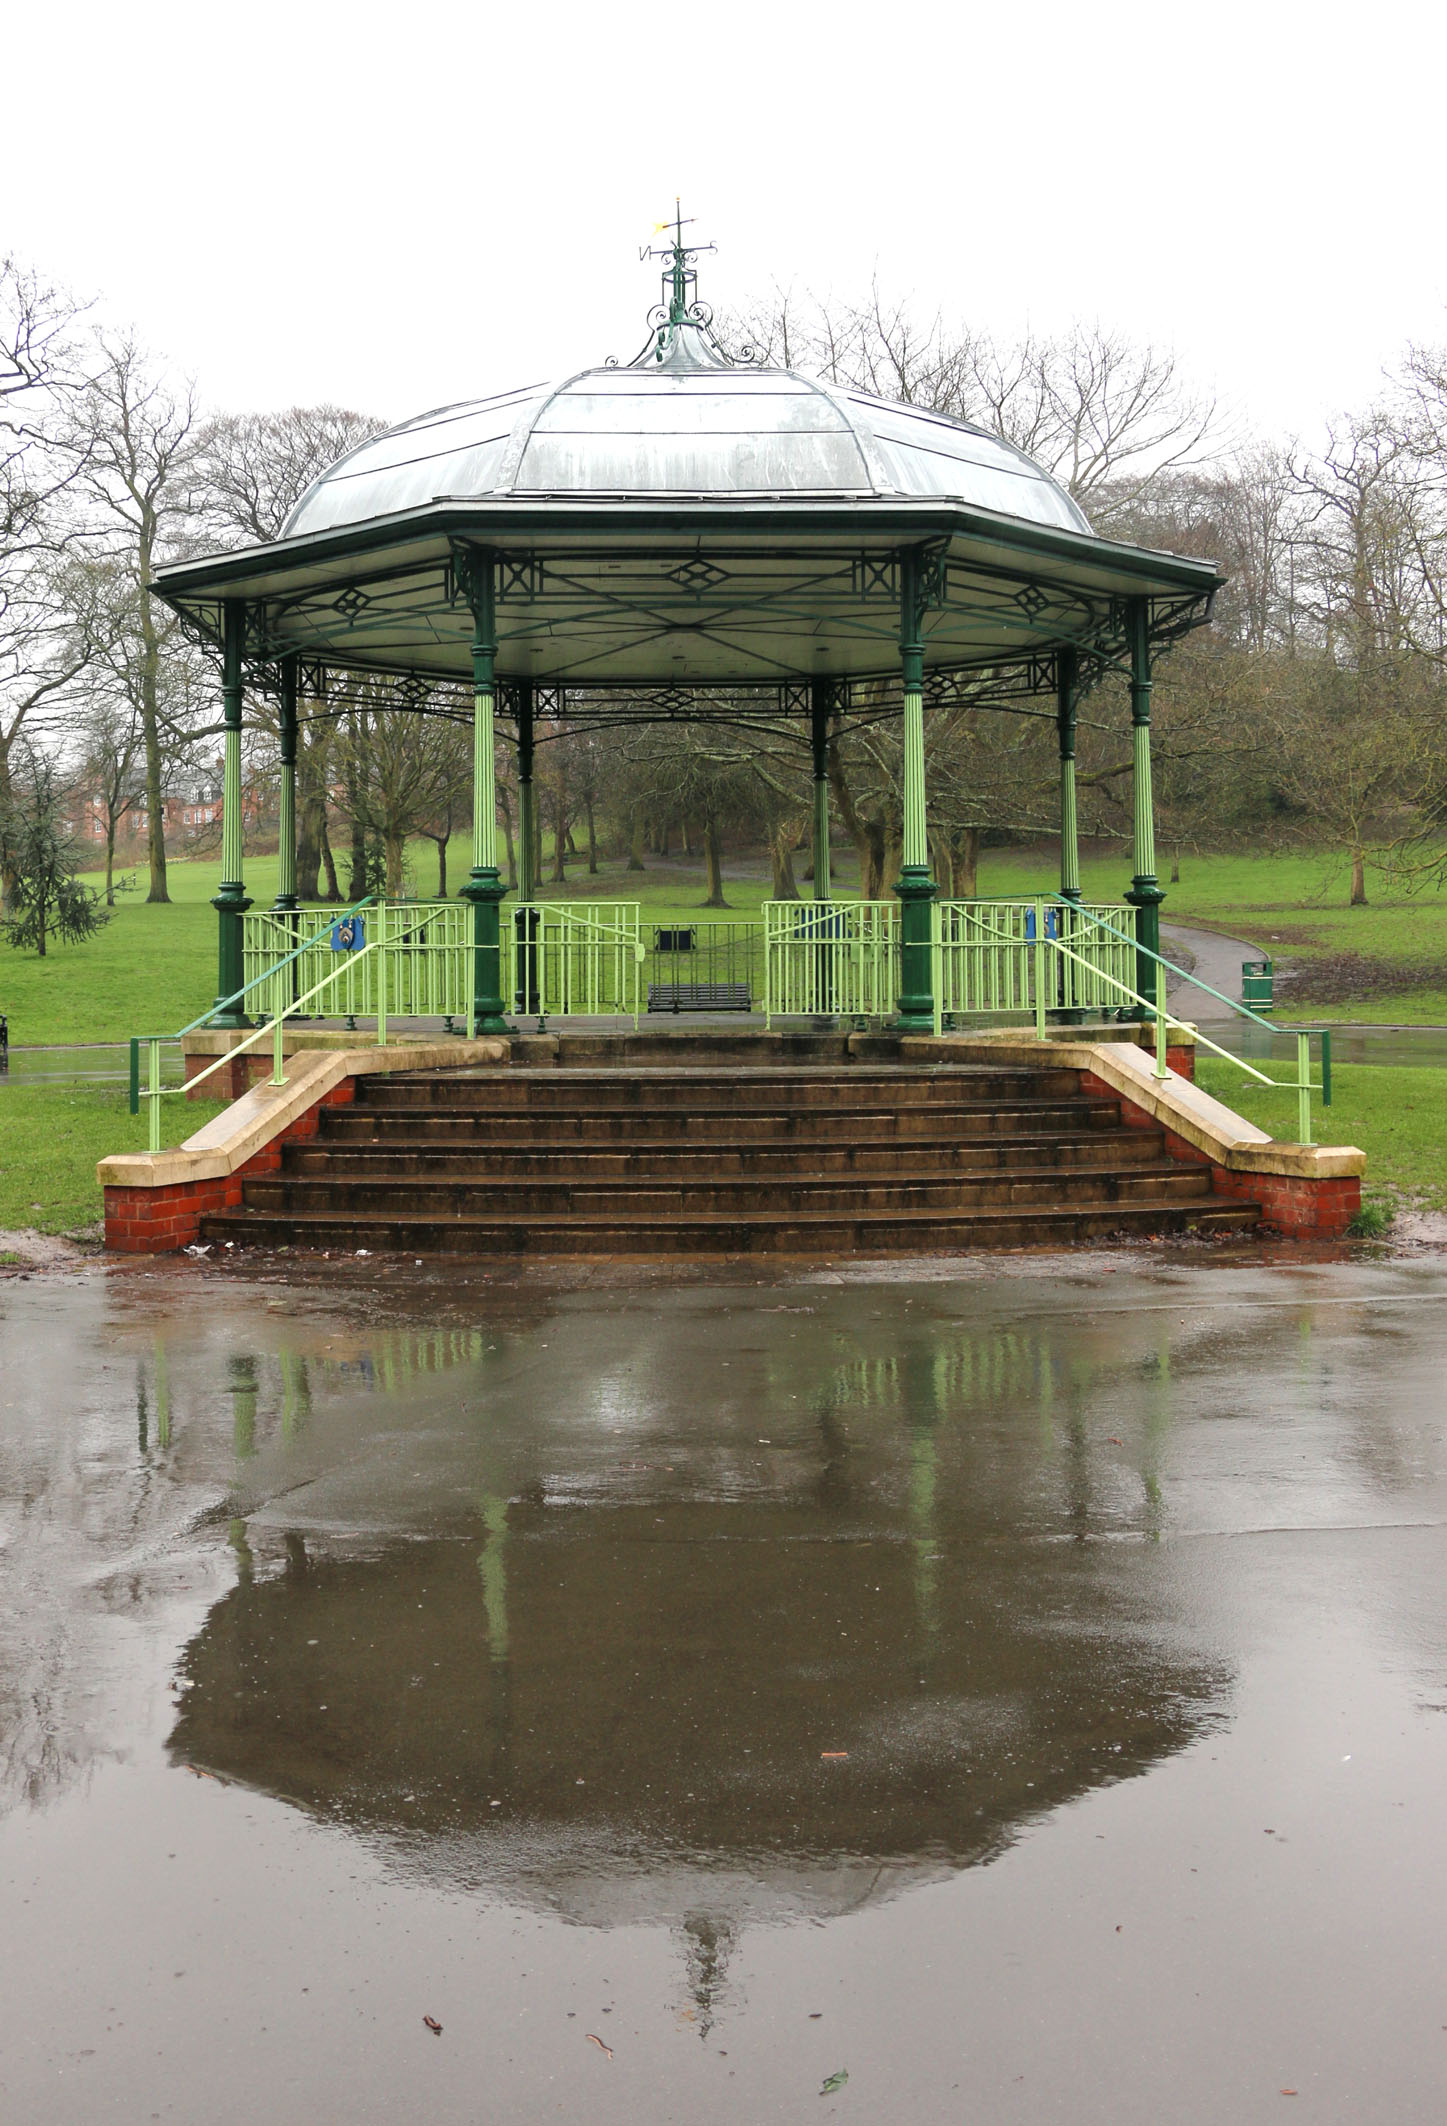 The bandstand in Mary Stevens Park in Stourbridge in the rain